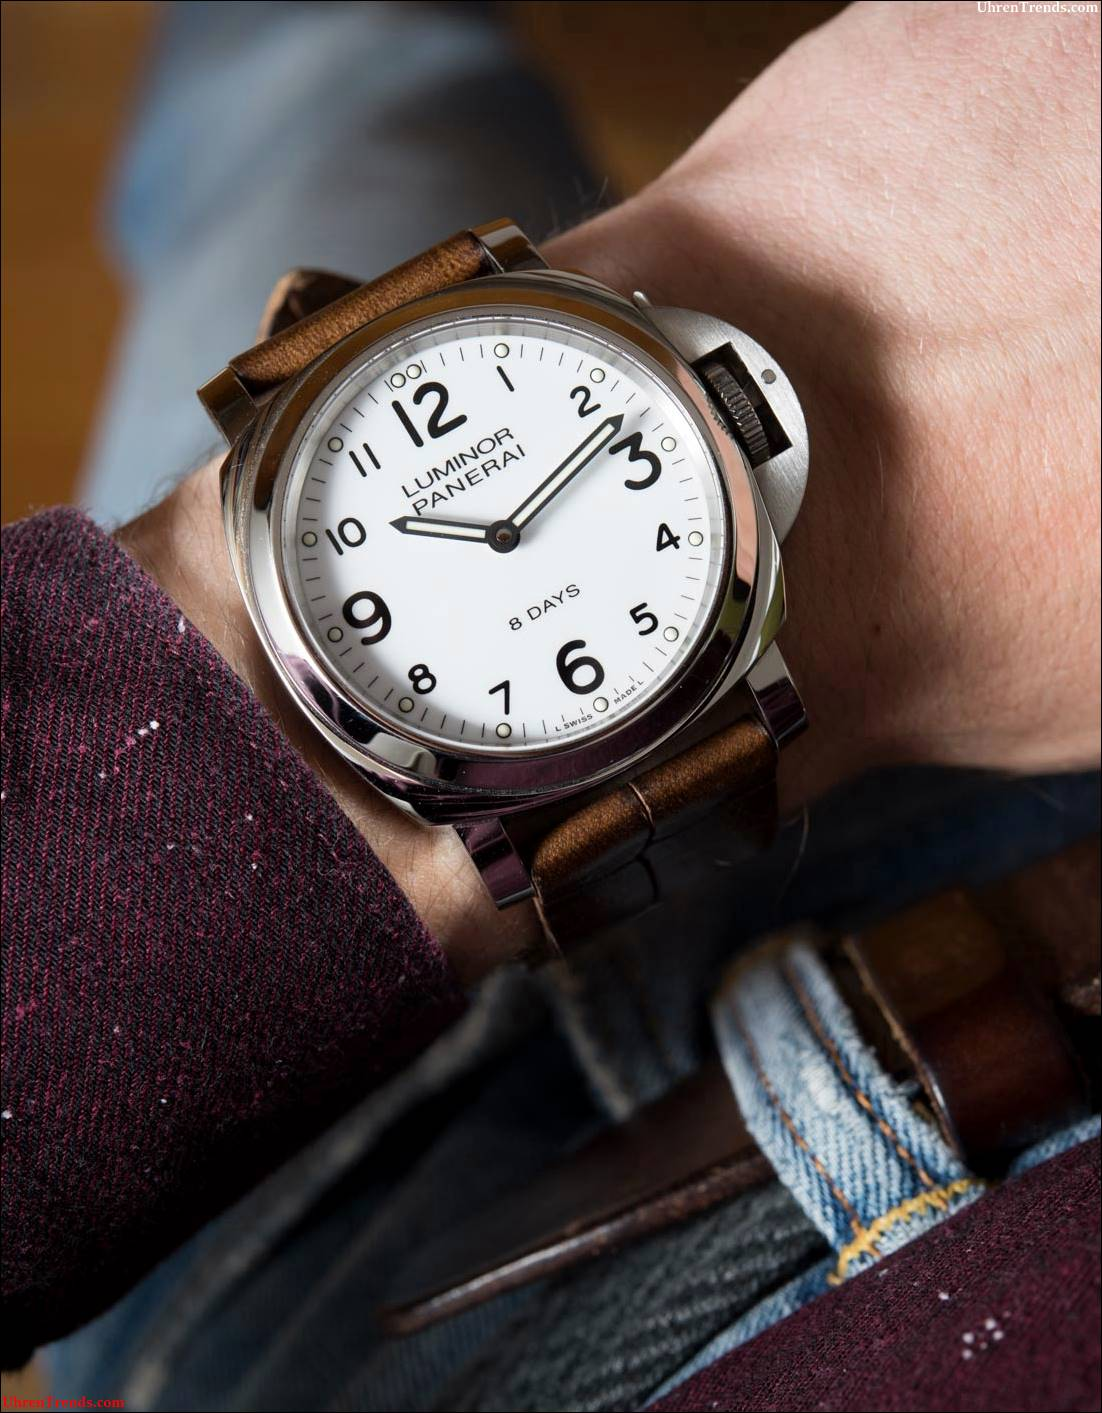 Panerai Luminor Base 8 Tage Acciaio PAM561 Watch Review